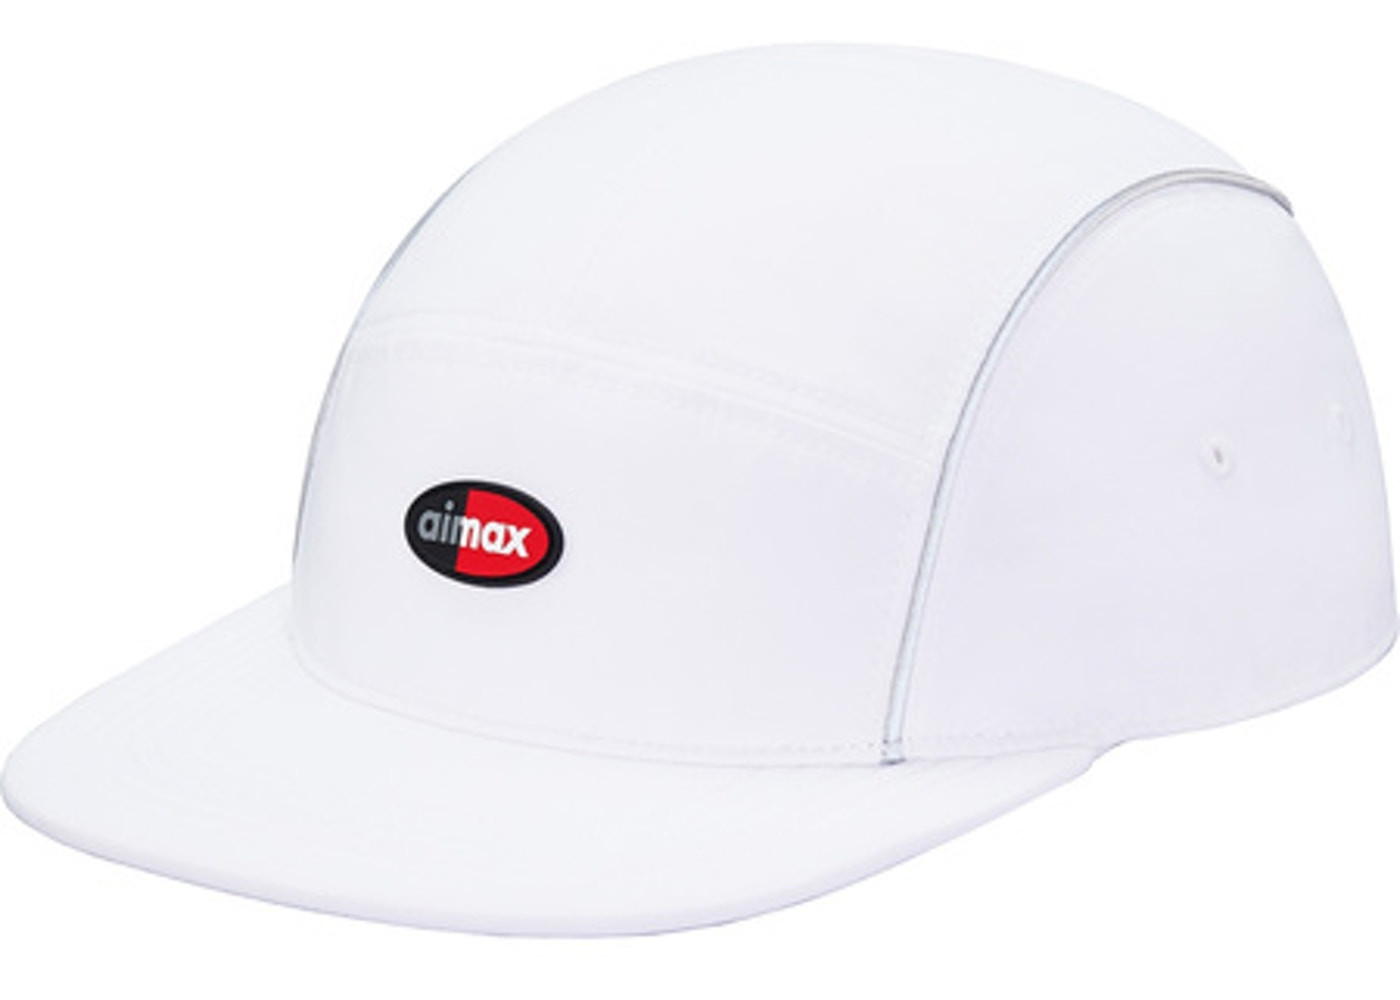 ee398308d91b6 Supreme Nike Air Max Running Hat